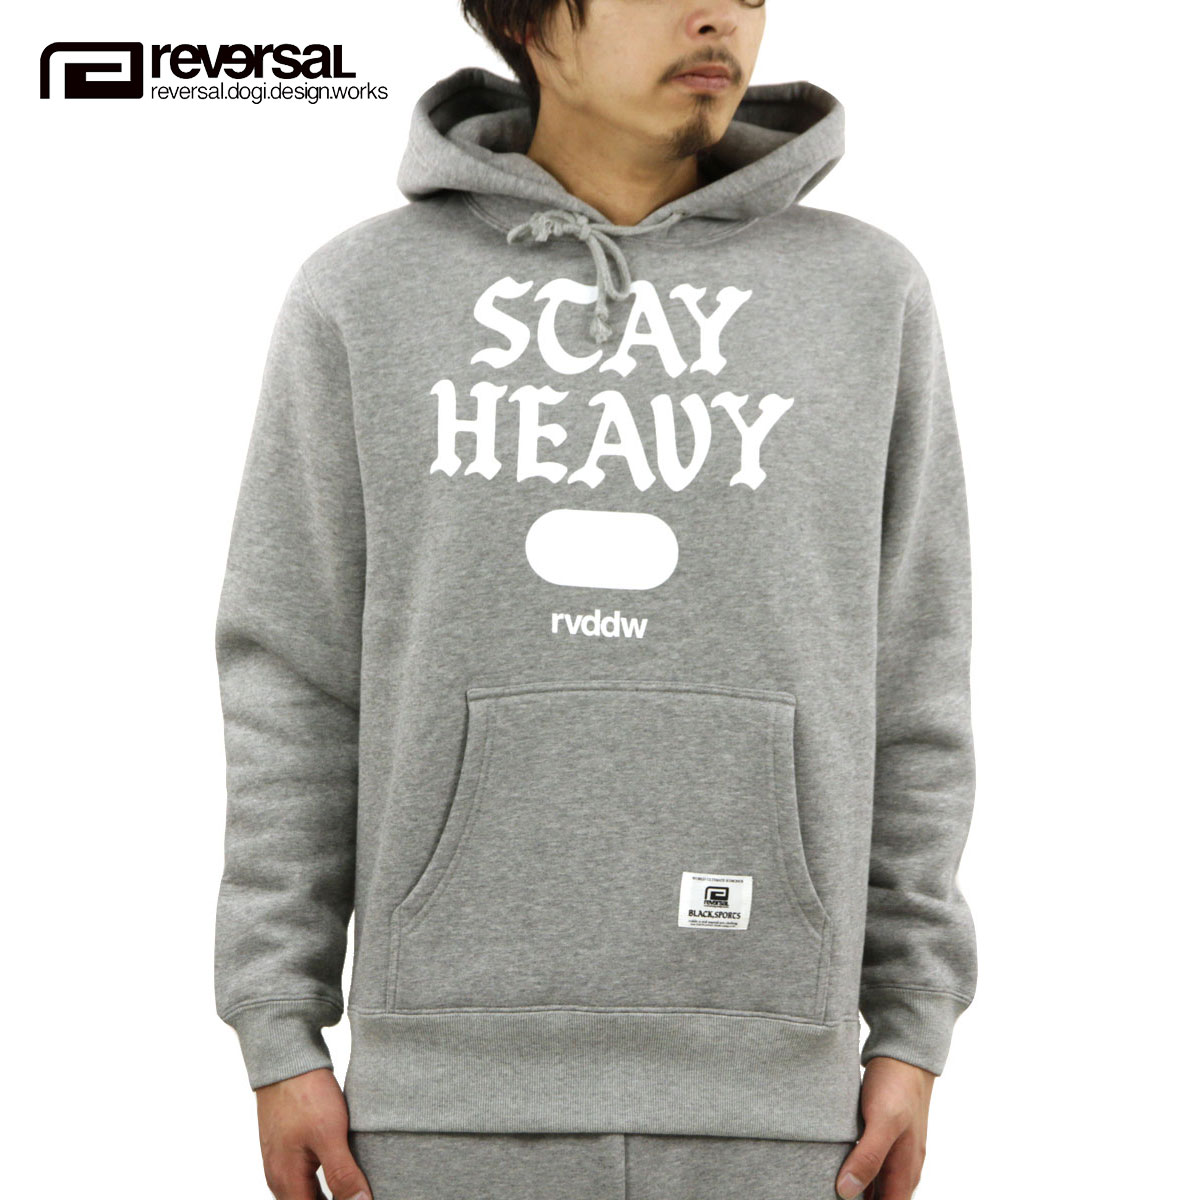 リバーサル REVERSAL 正規販売店 メンズ プルオーバーパーカー STAY HEAVY SWEAT PARKA rvap16aw005a APPAREL HEATHER GRAY D00S20